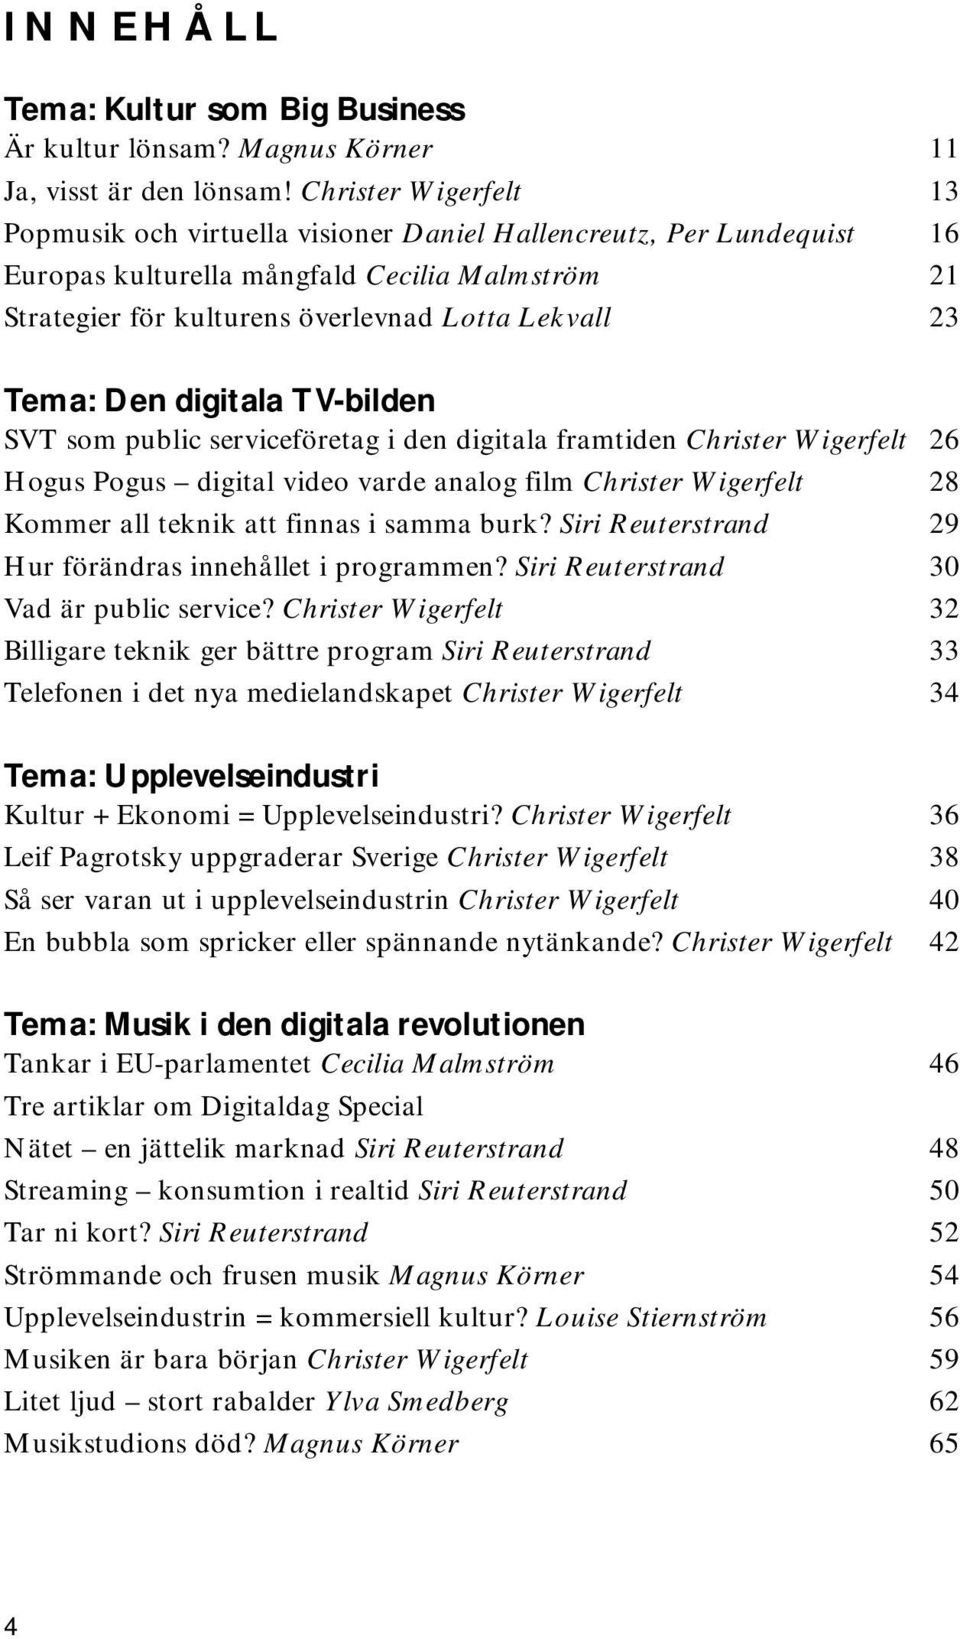 Tema: Den digitala TV-bilden SVT som public serviceföretag i den digitala framtiden Christer Wigerfelt 26 Hogus Pogus digital video varde analog film Christer Wigerfelt 28 Kommer all teknik att